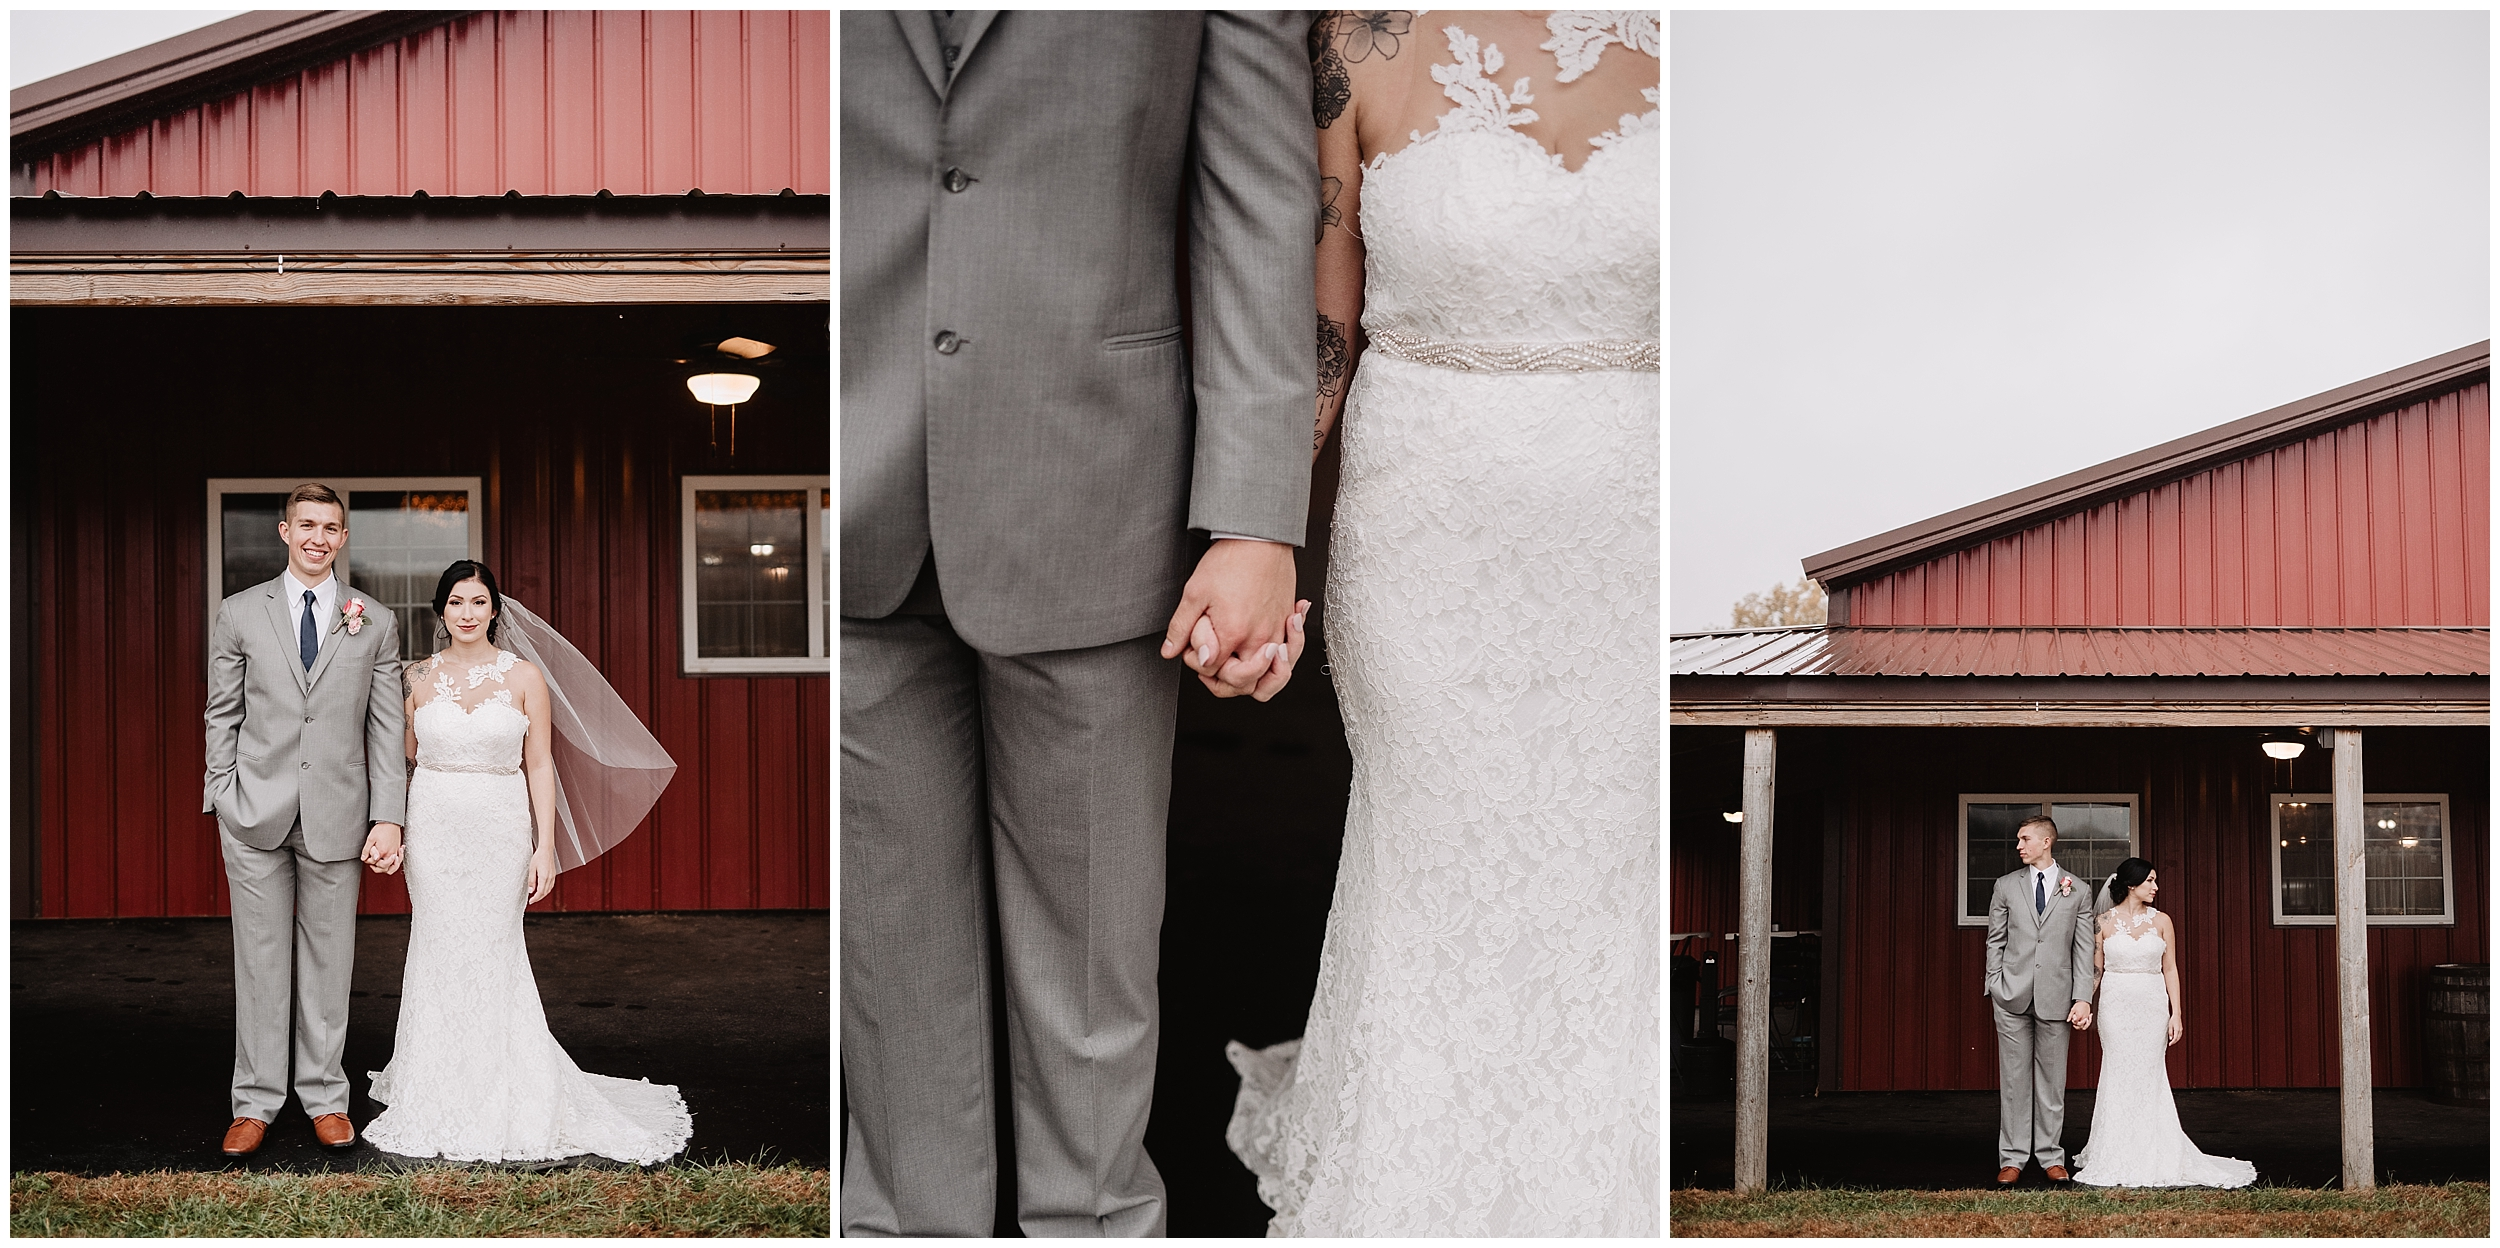 oklahoma wedding photography first look bride groom wedding day sweet viola kansas rustic pines black white black&white red barn